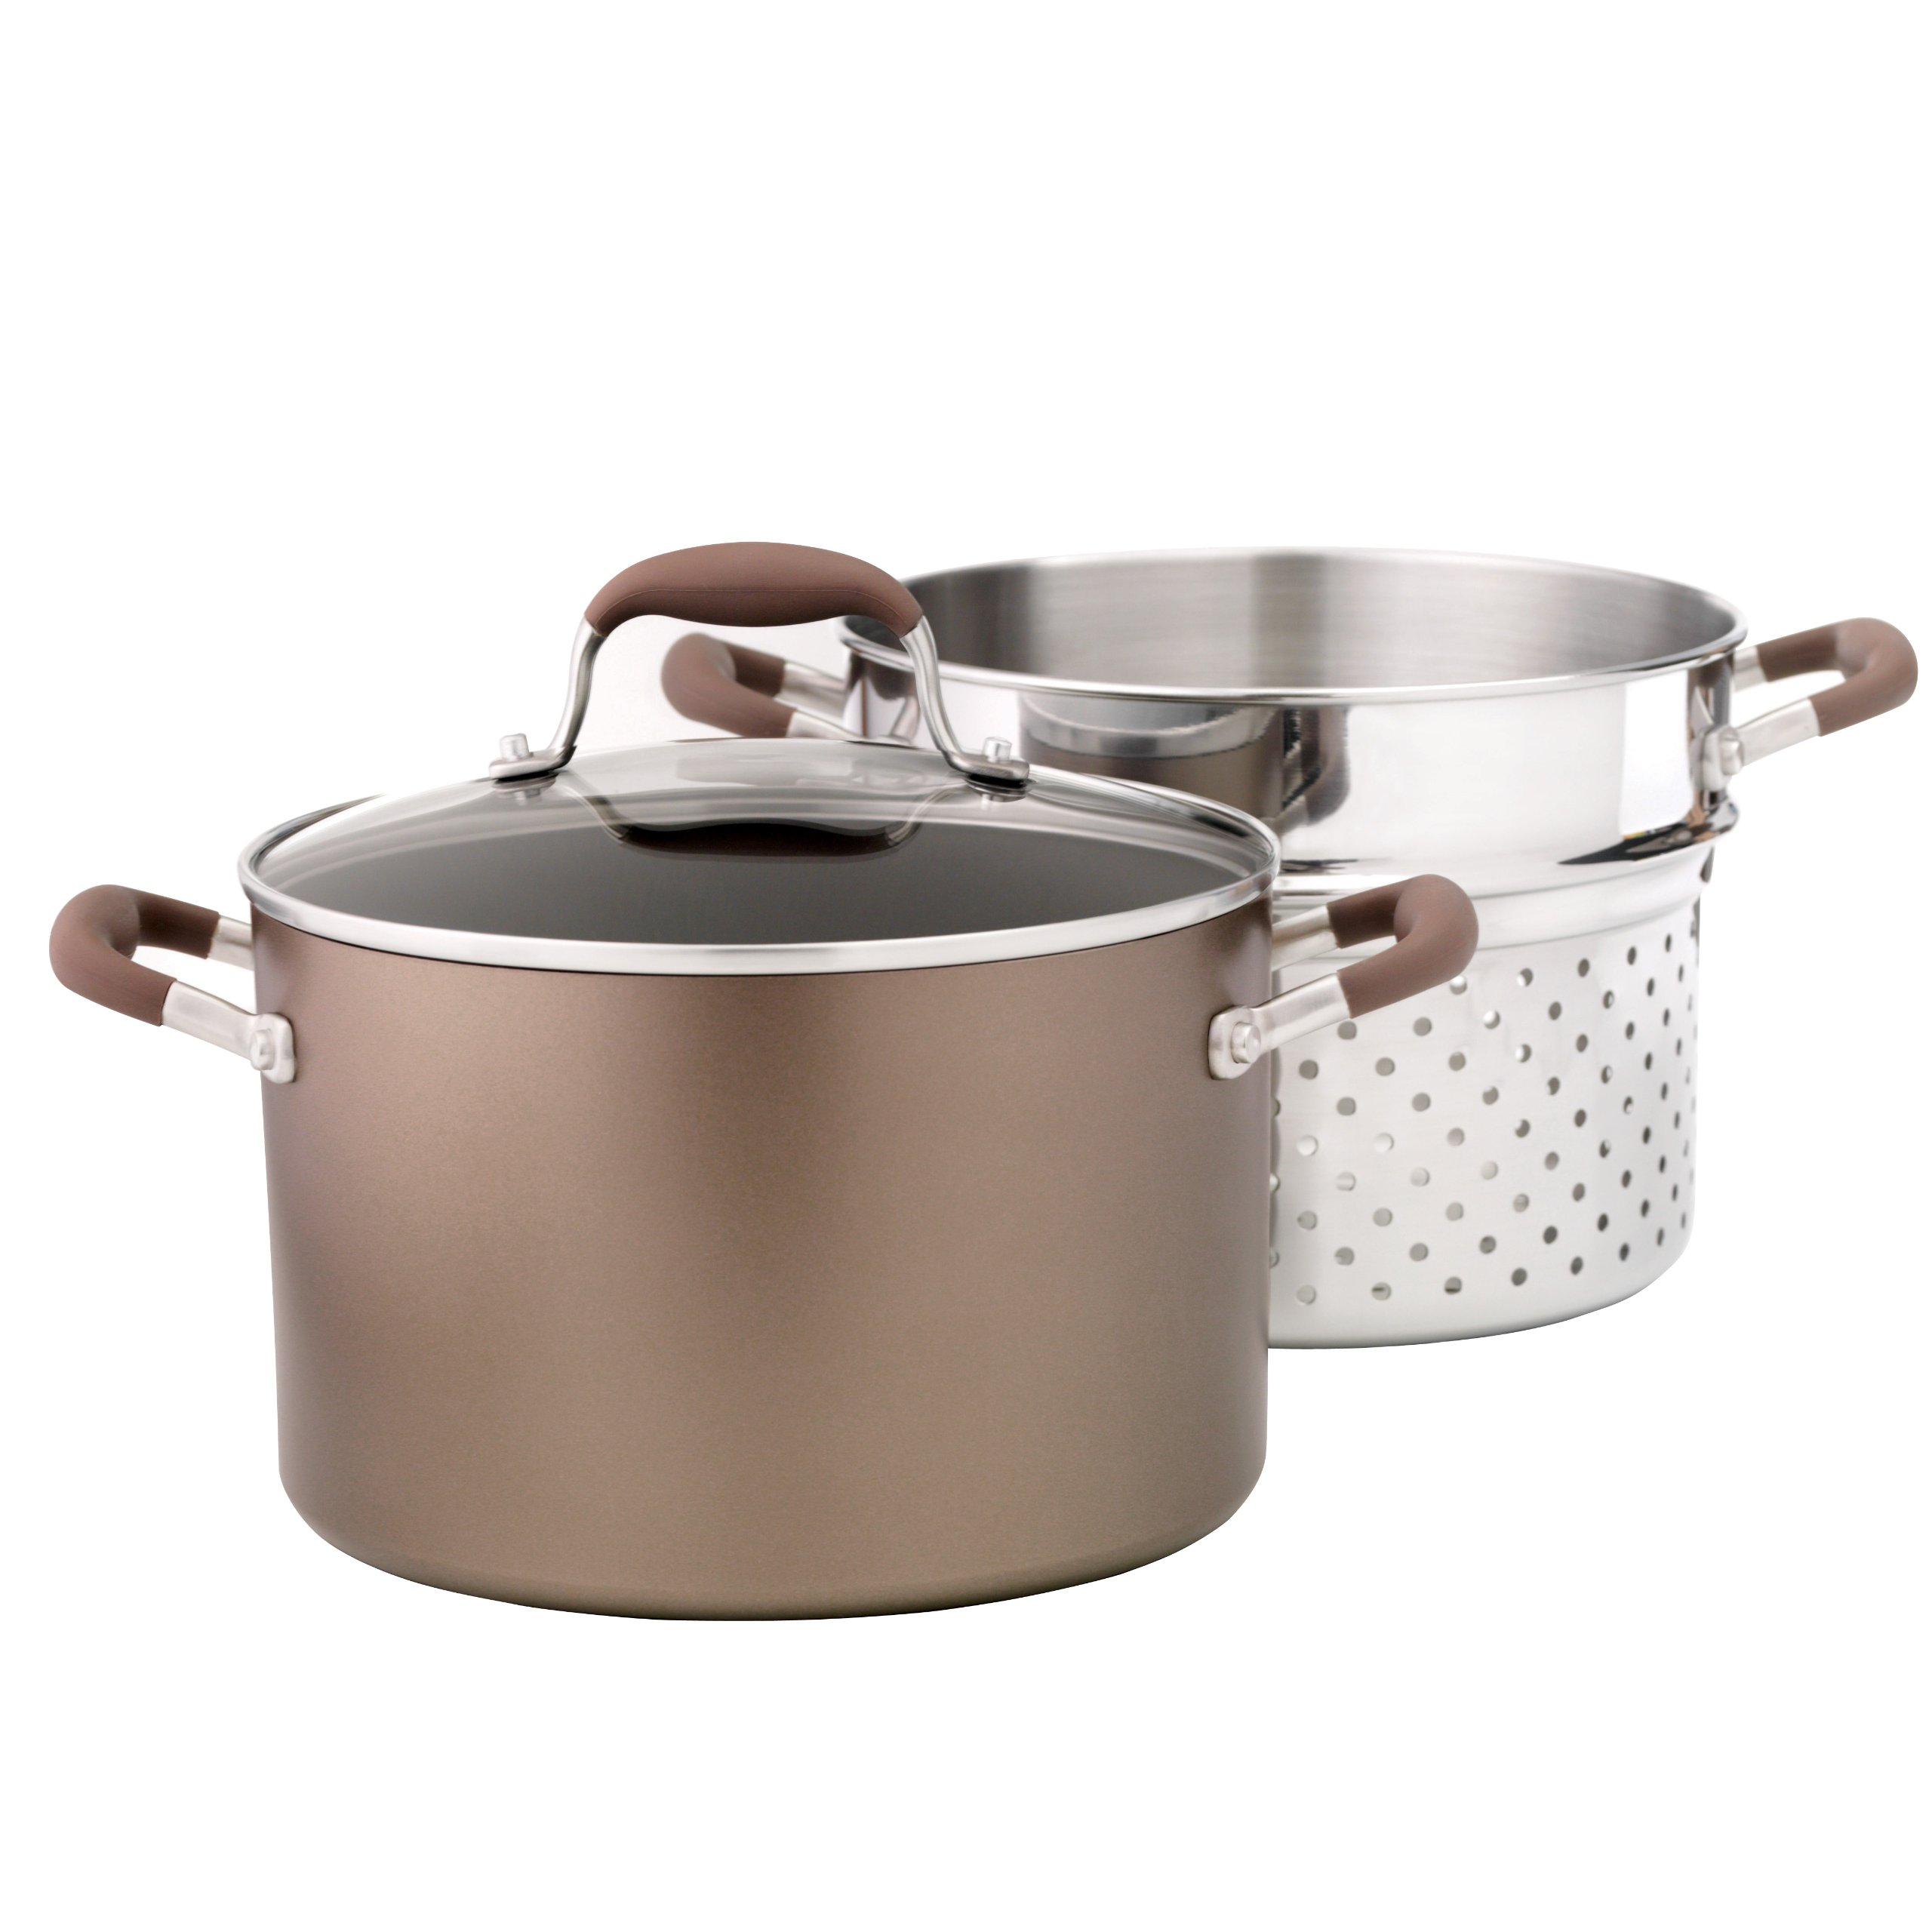 Anolon Advanced Bronze Hard Anodized Nonstick 7-Quart Covered Stockpot and Stainless Steel Steamer/Pasta Insert